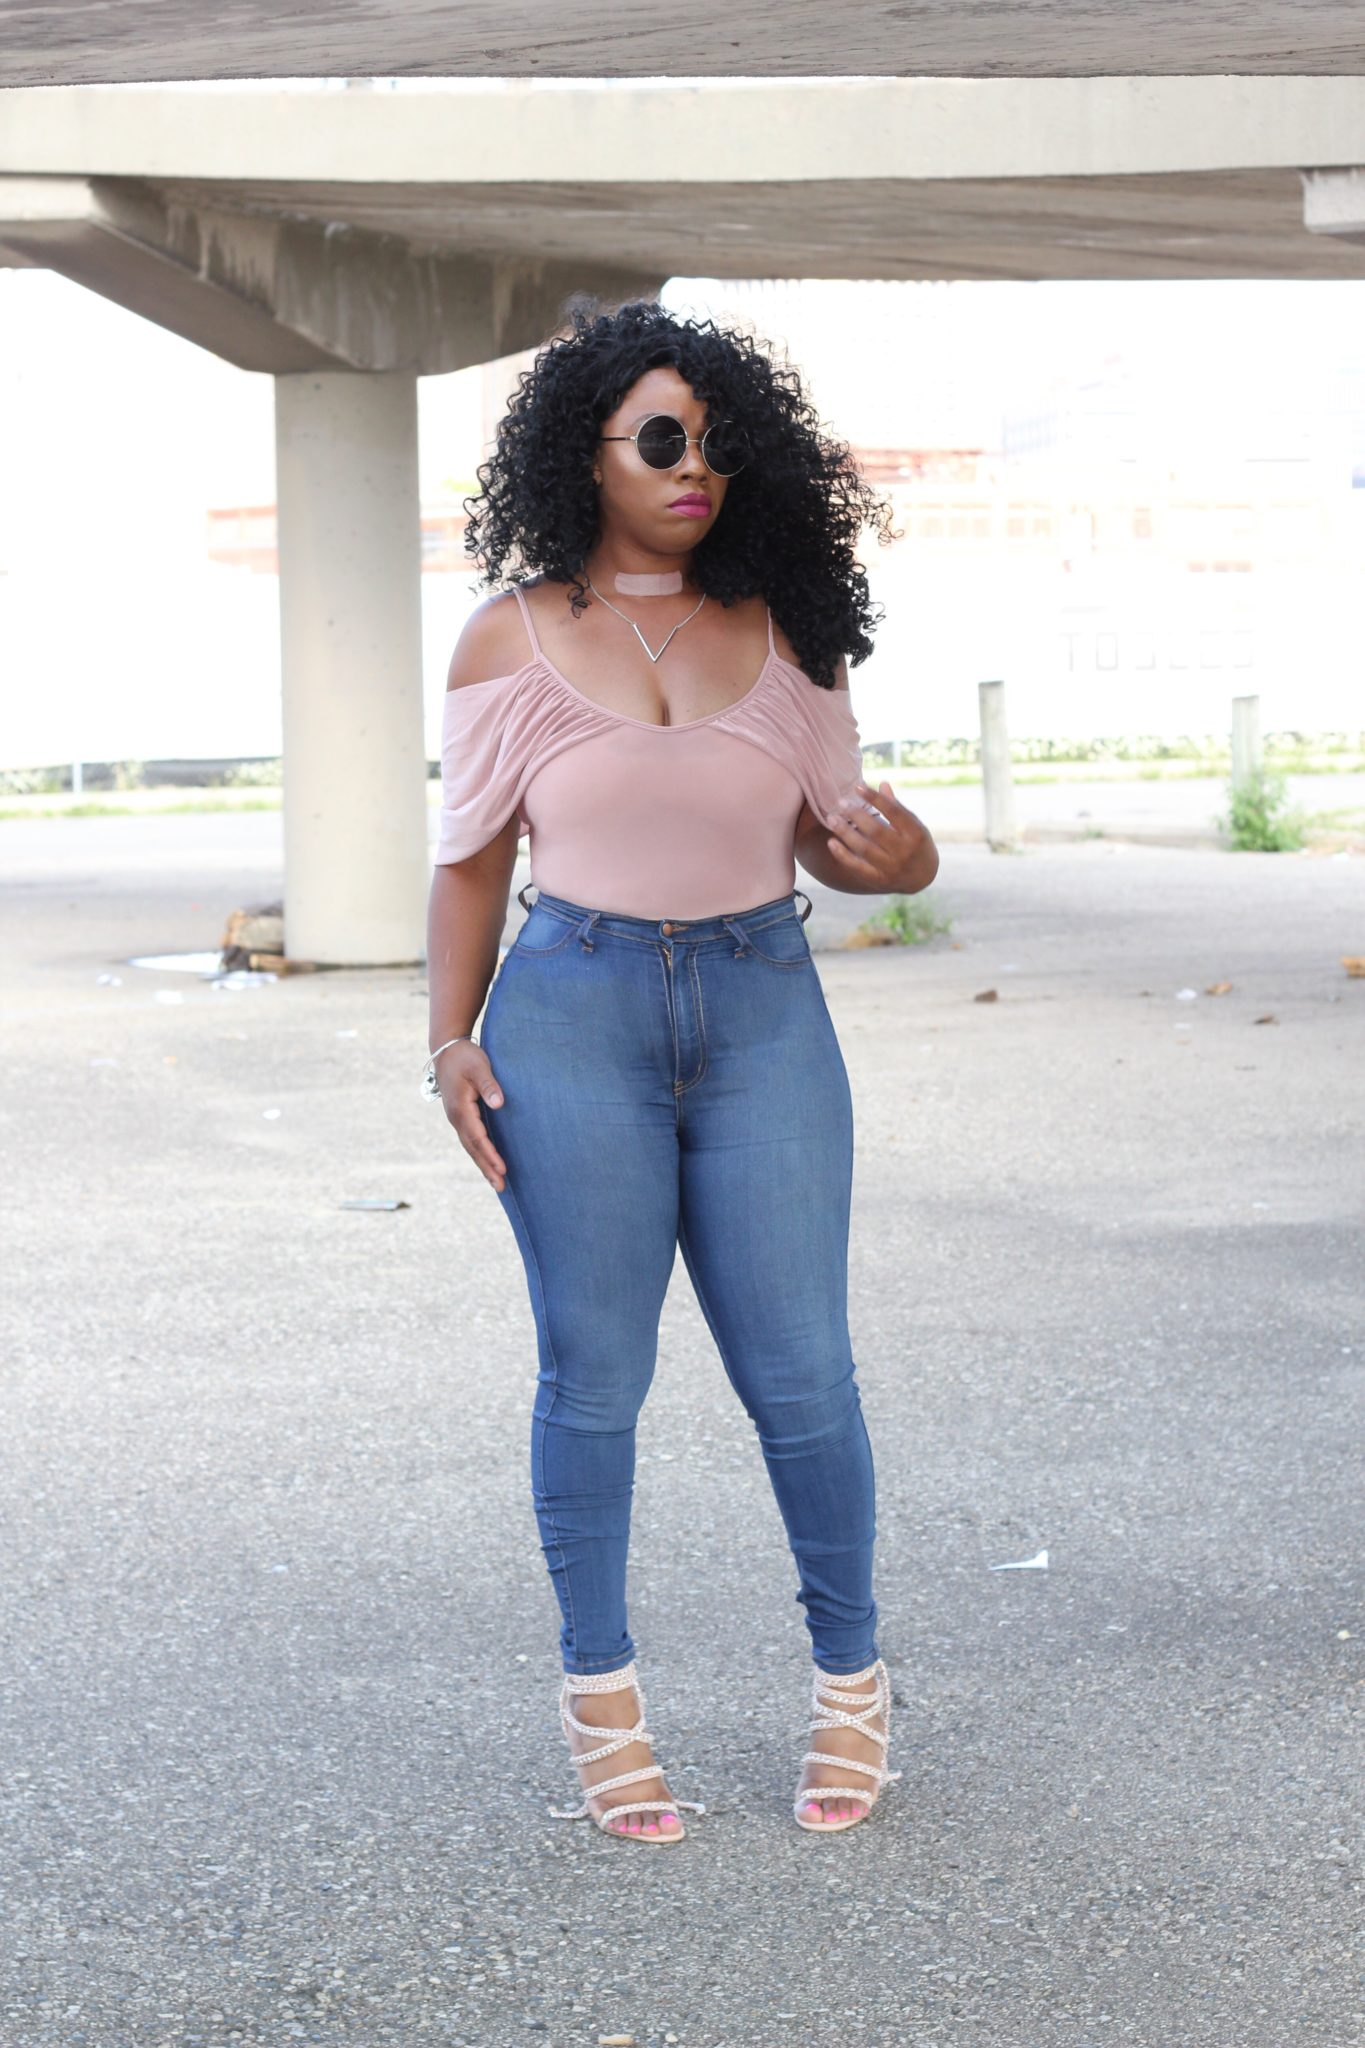 publish_snapshot-2 Contemporary Casual Fashion Fashion Nova Missguided OOTD Uncategorized